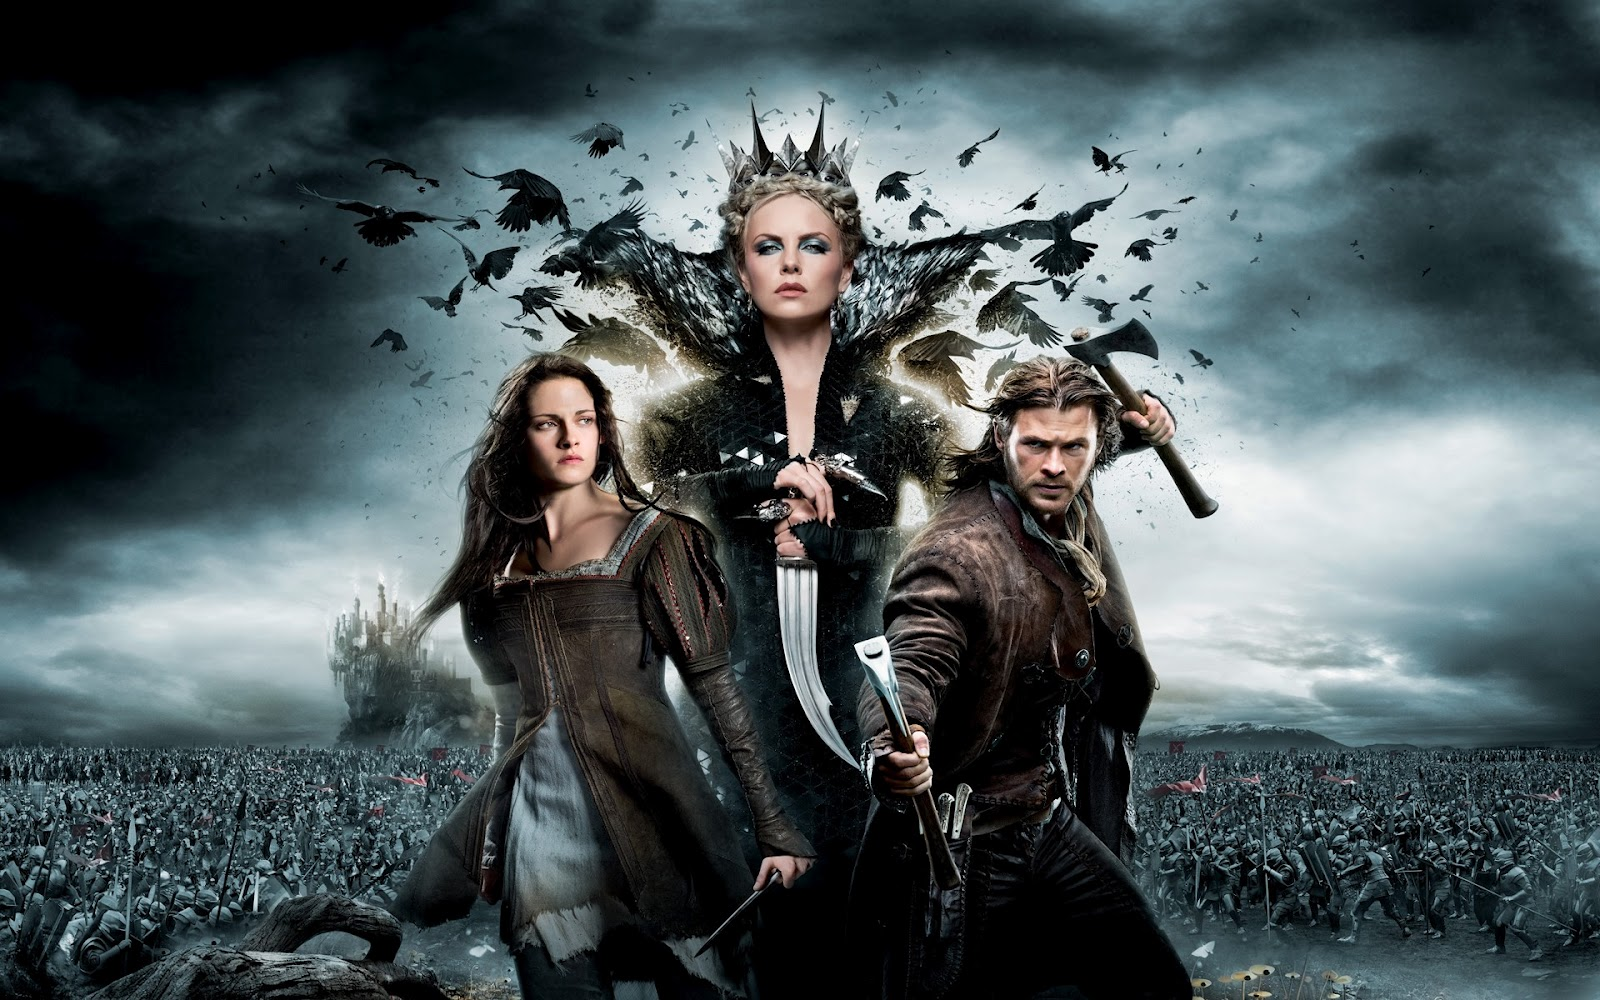 http://1.bp.blogspot.com/-ND9MxQyZowE/T8kCCZTXn3I/AAAAAAAAB4o/TsTsrEm7GHo/s1600/Snow_White_and_Huntsman_Kristen_Steward_Charlize_Theron_Chris_Hemsworth_HD_Wallpaper-Vvallpaper.Net.jpg